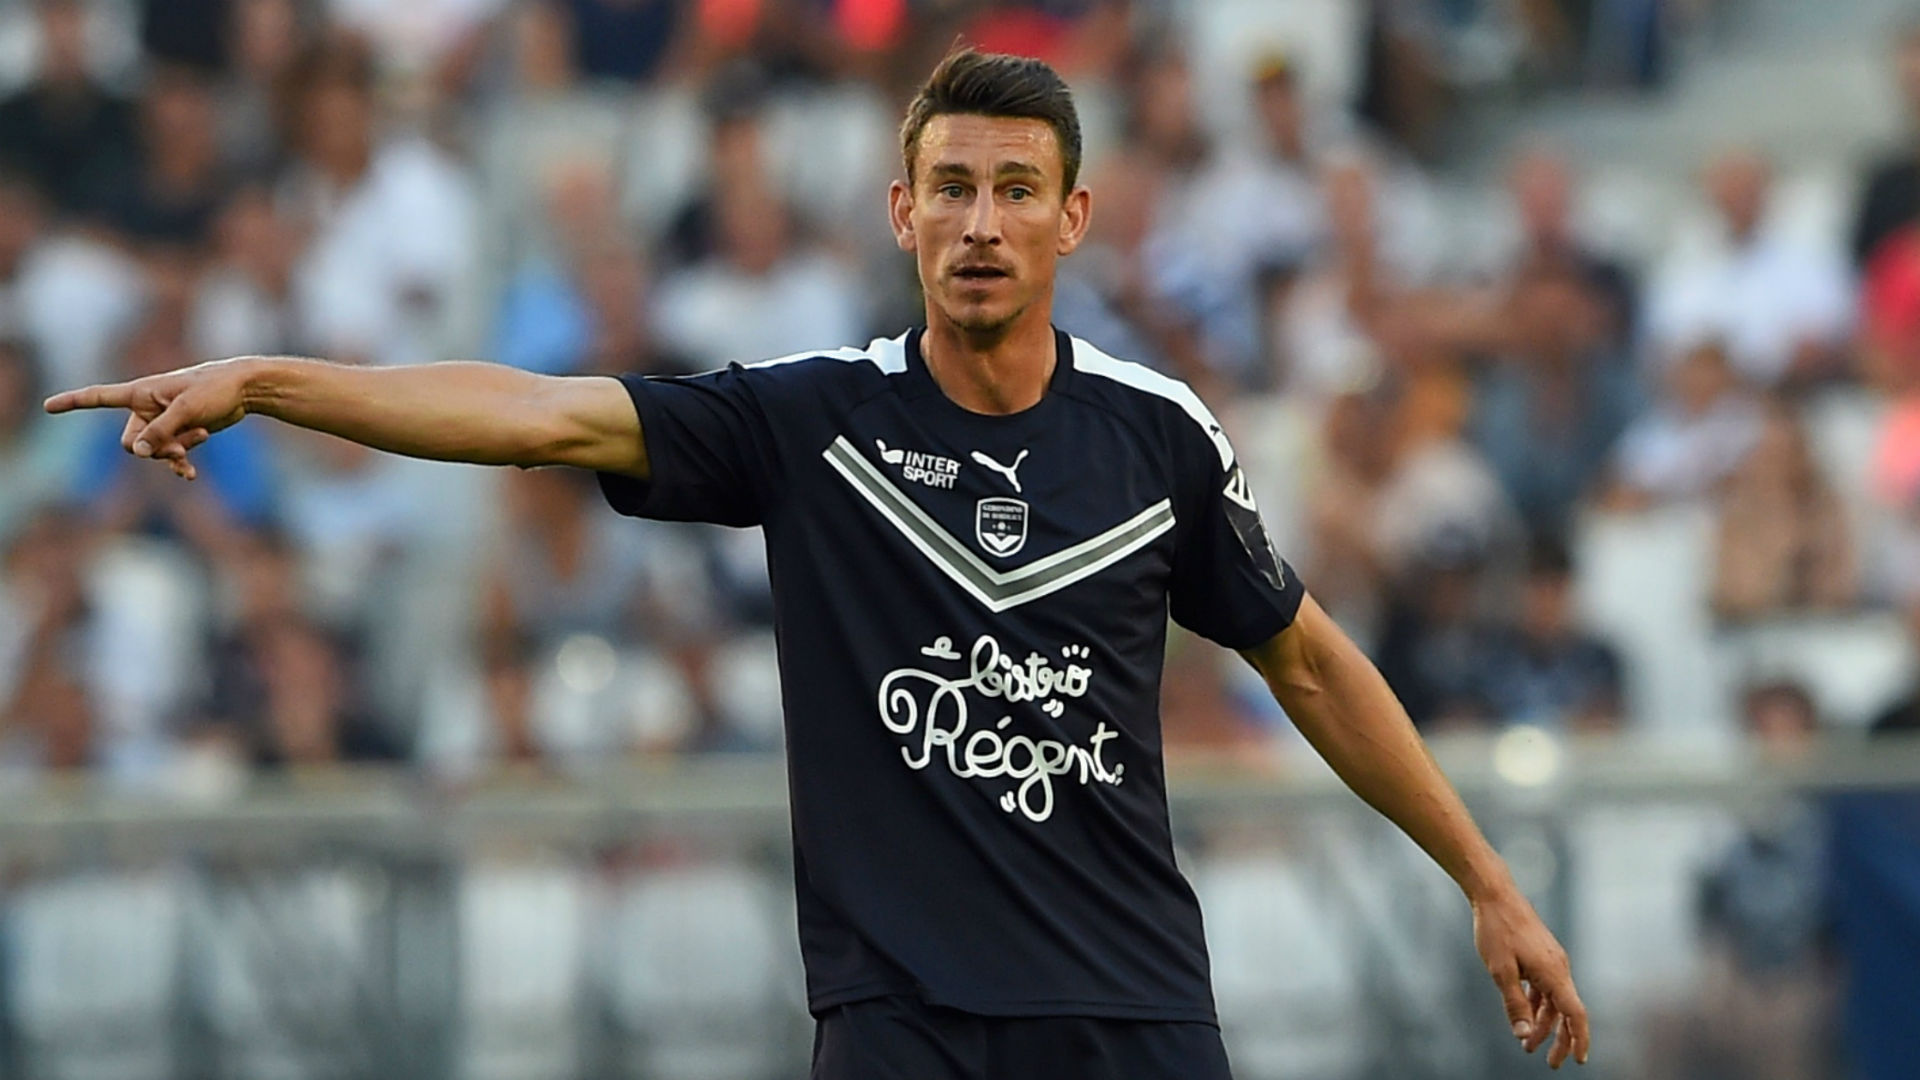 Koscielny's decision to leave Arsenal 'transcended wage issues', claims Bordeaux chairman